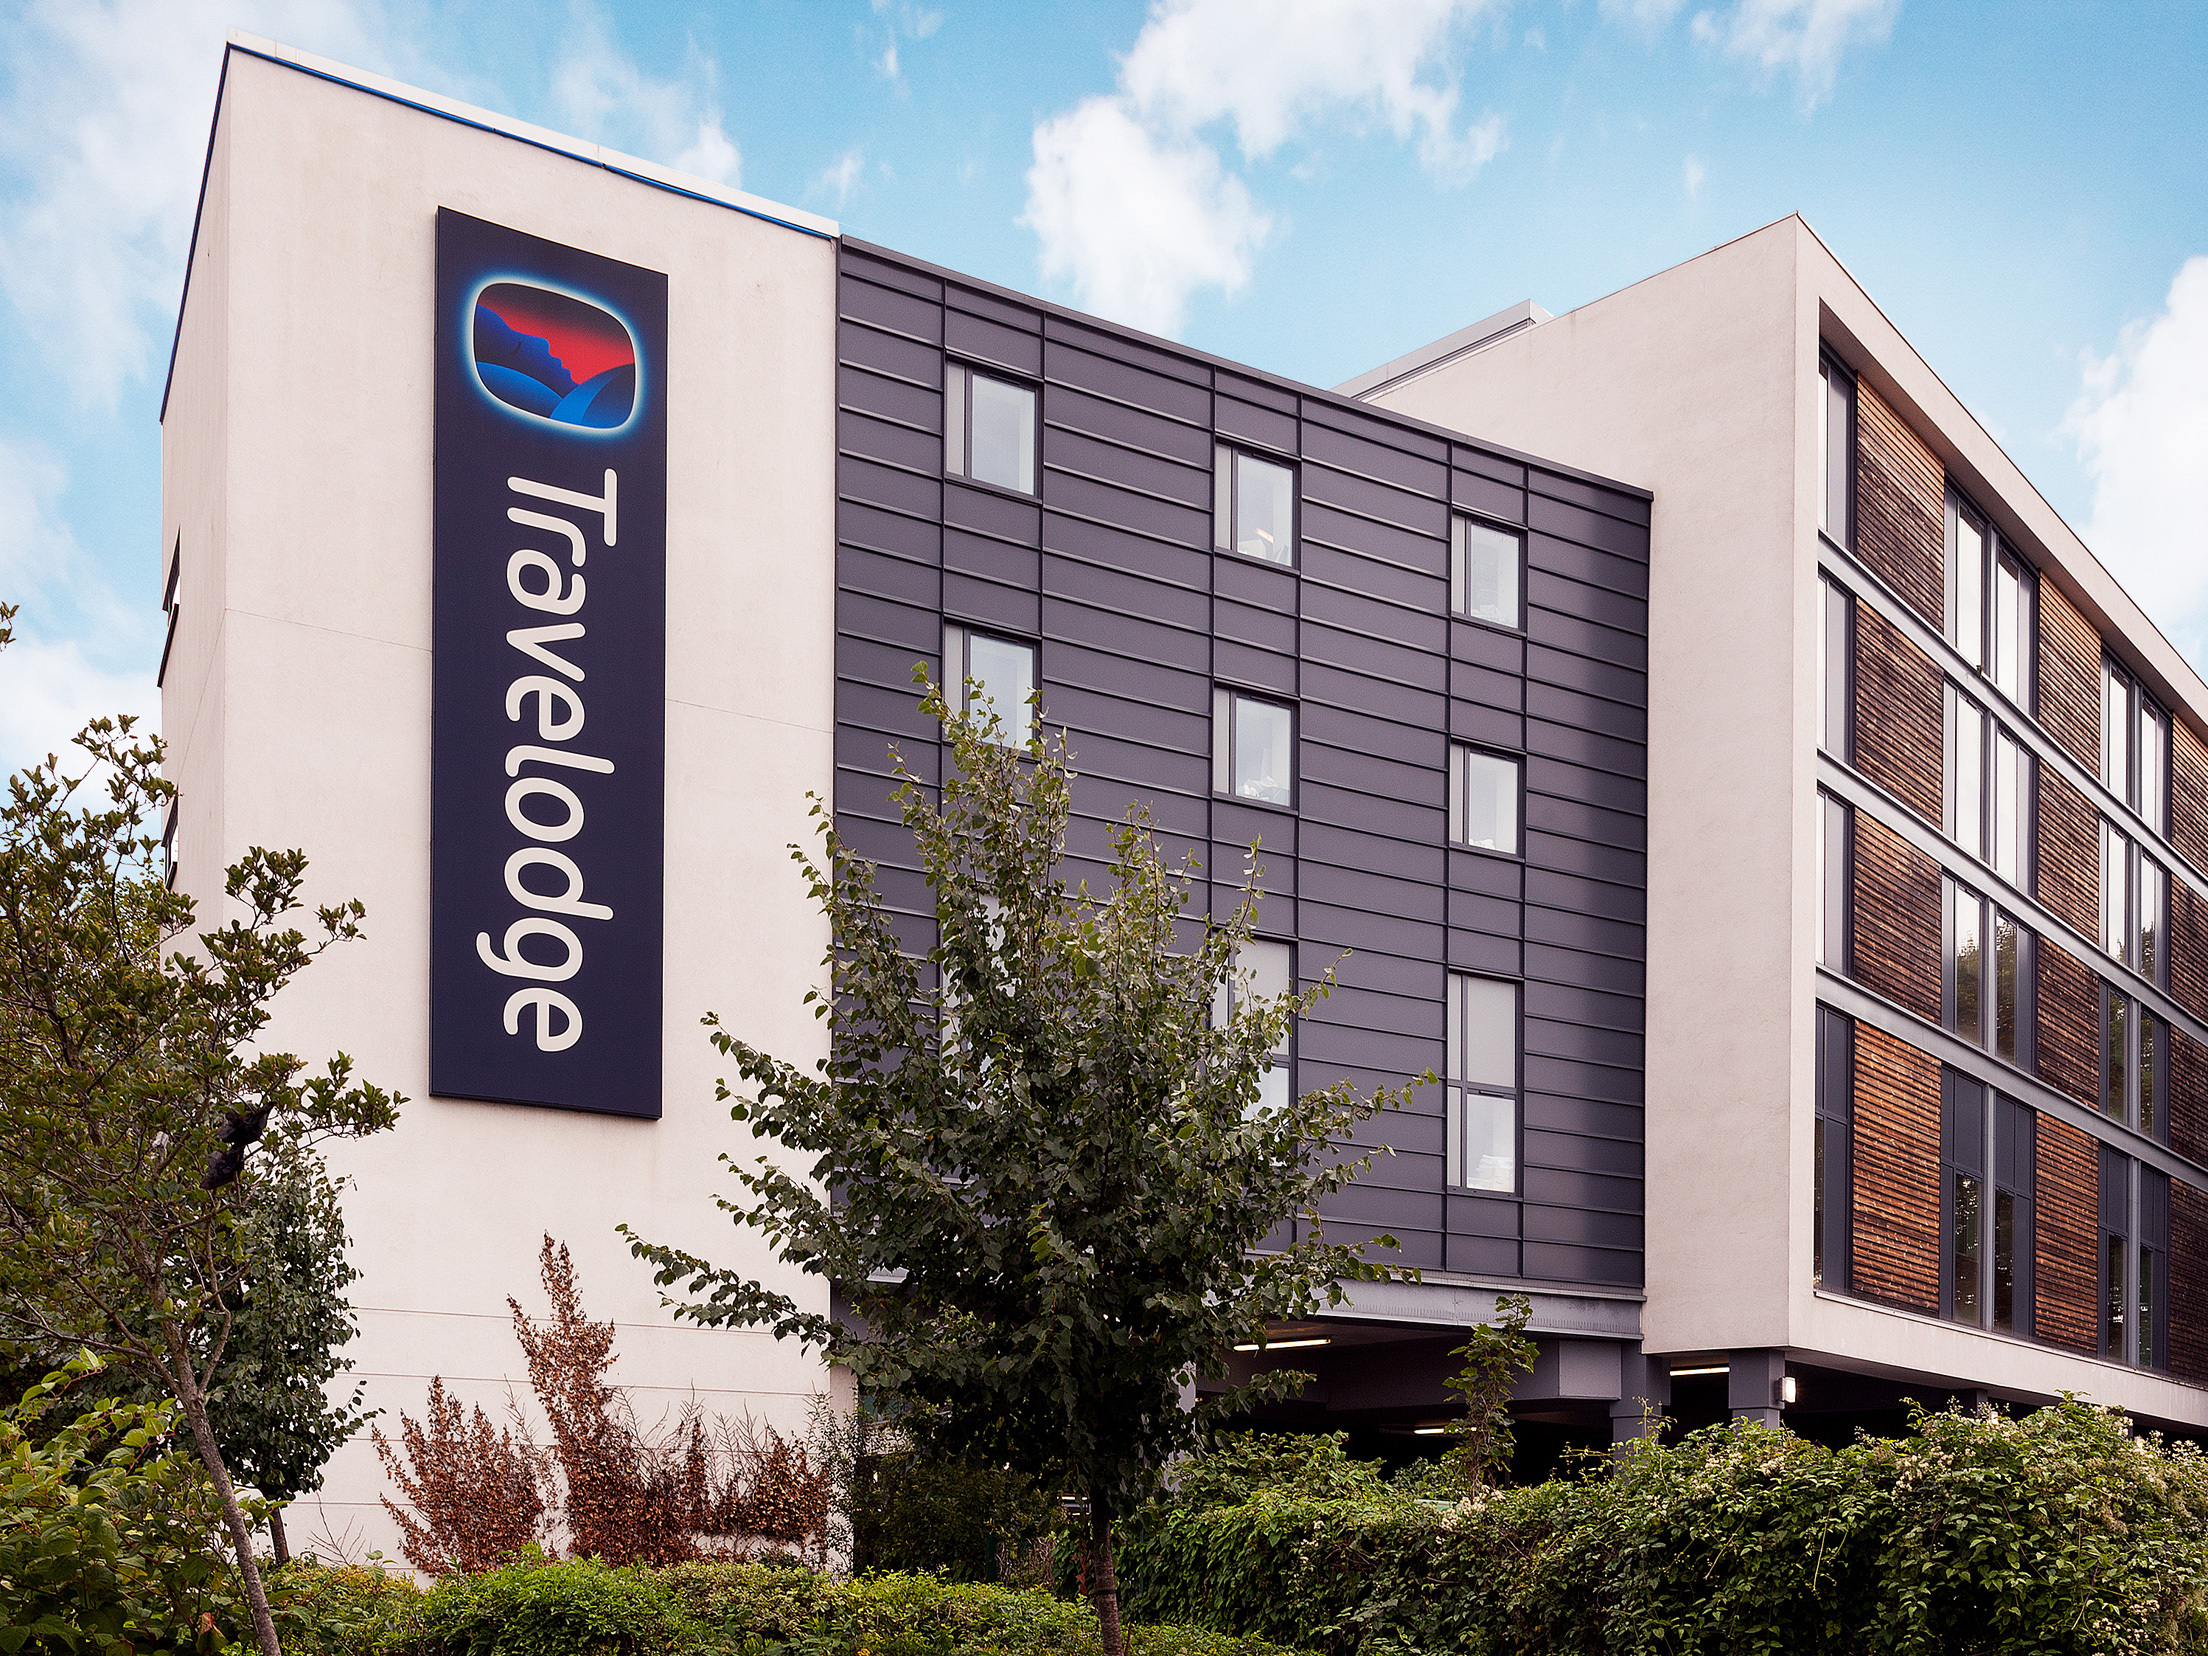 Travelodge, Heathrow